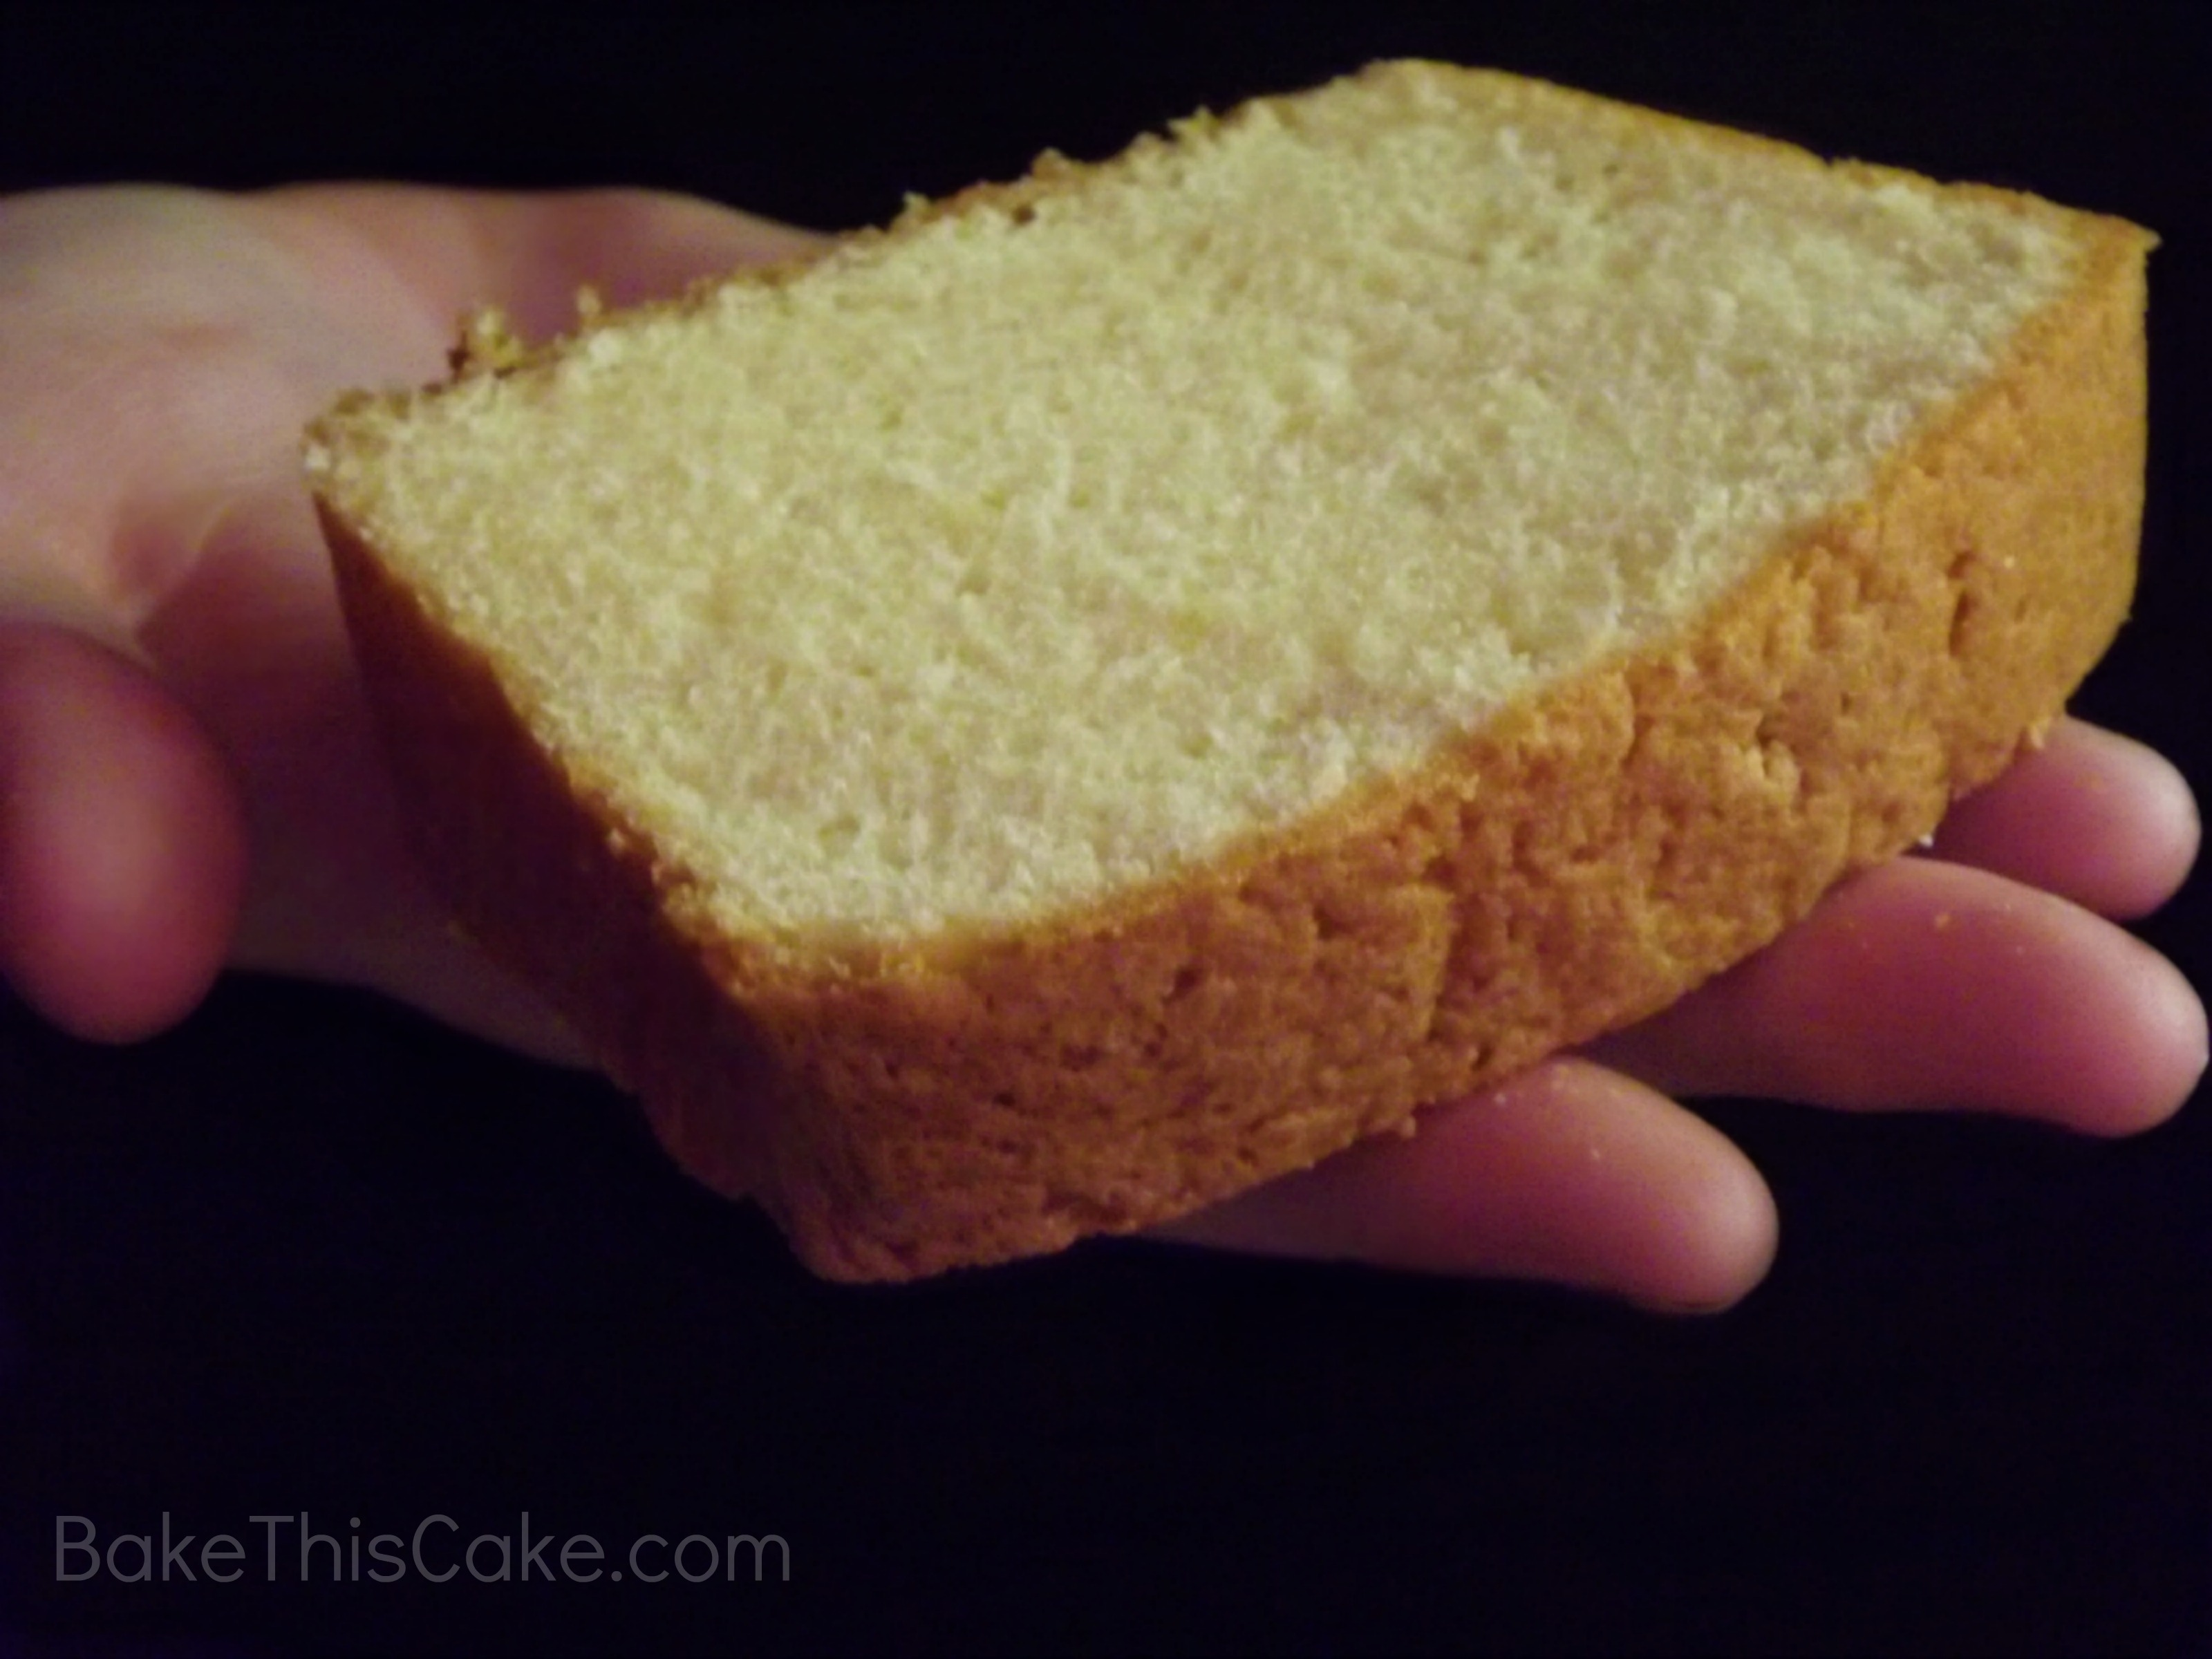 Vintage Sour Cream Pound Cake Recipe And An Amazing Group Of Women